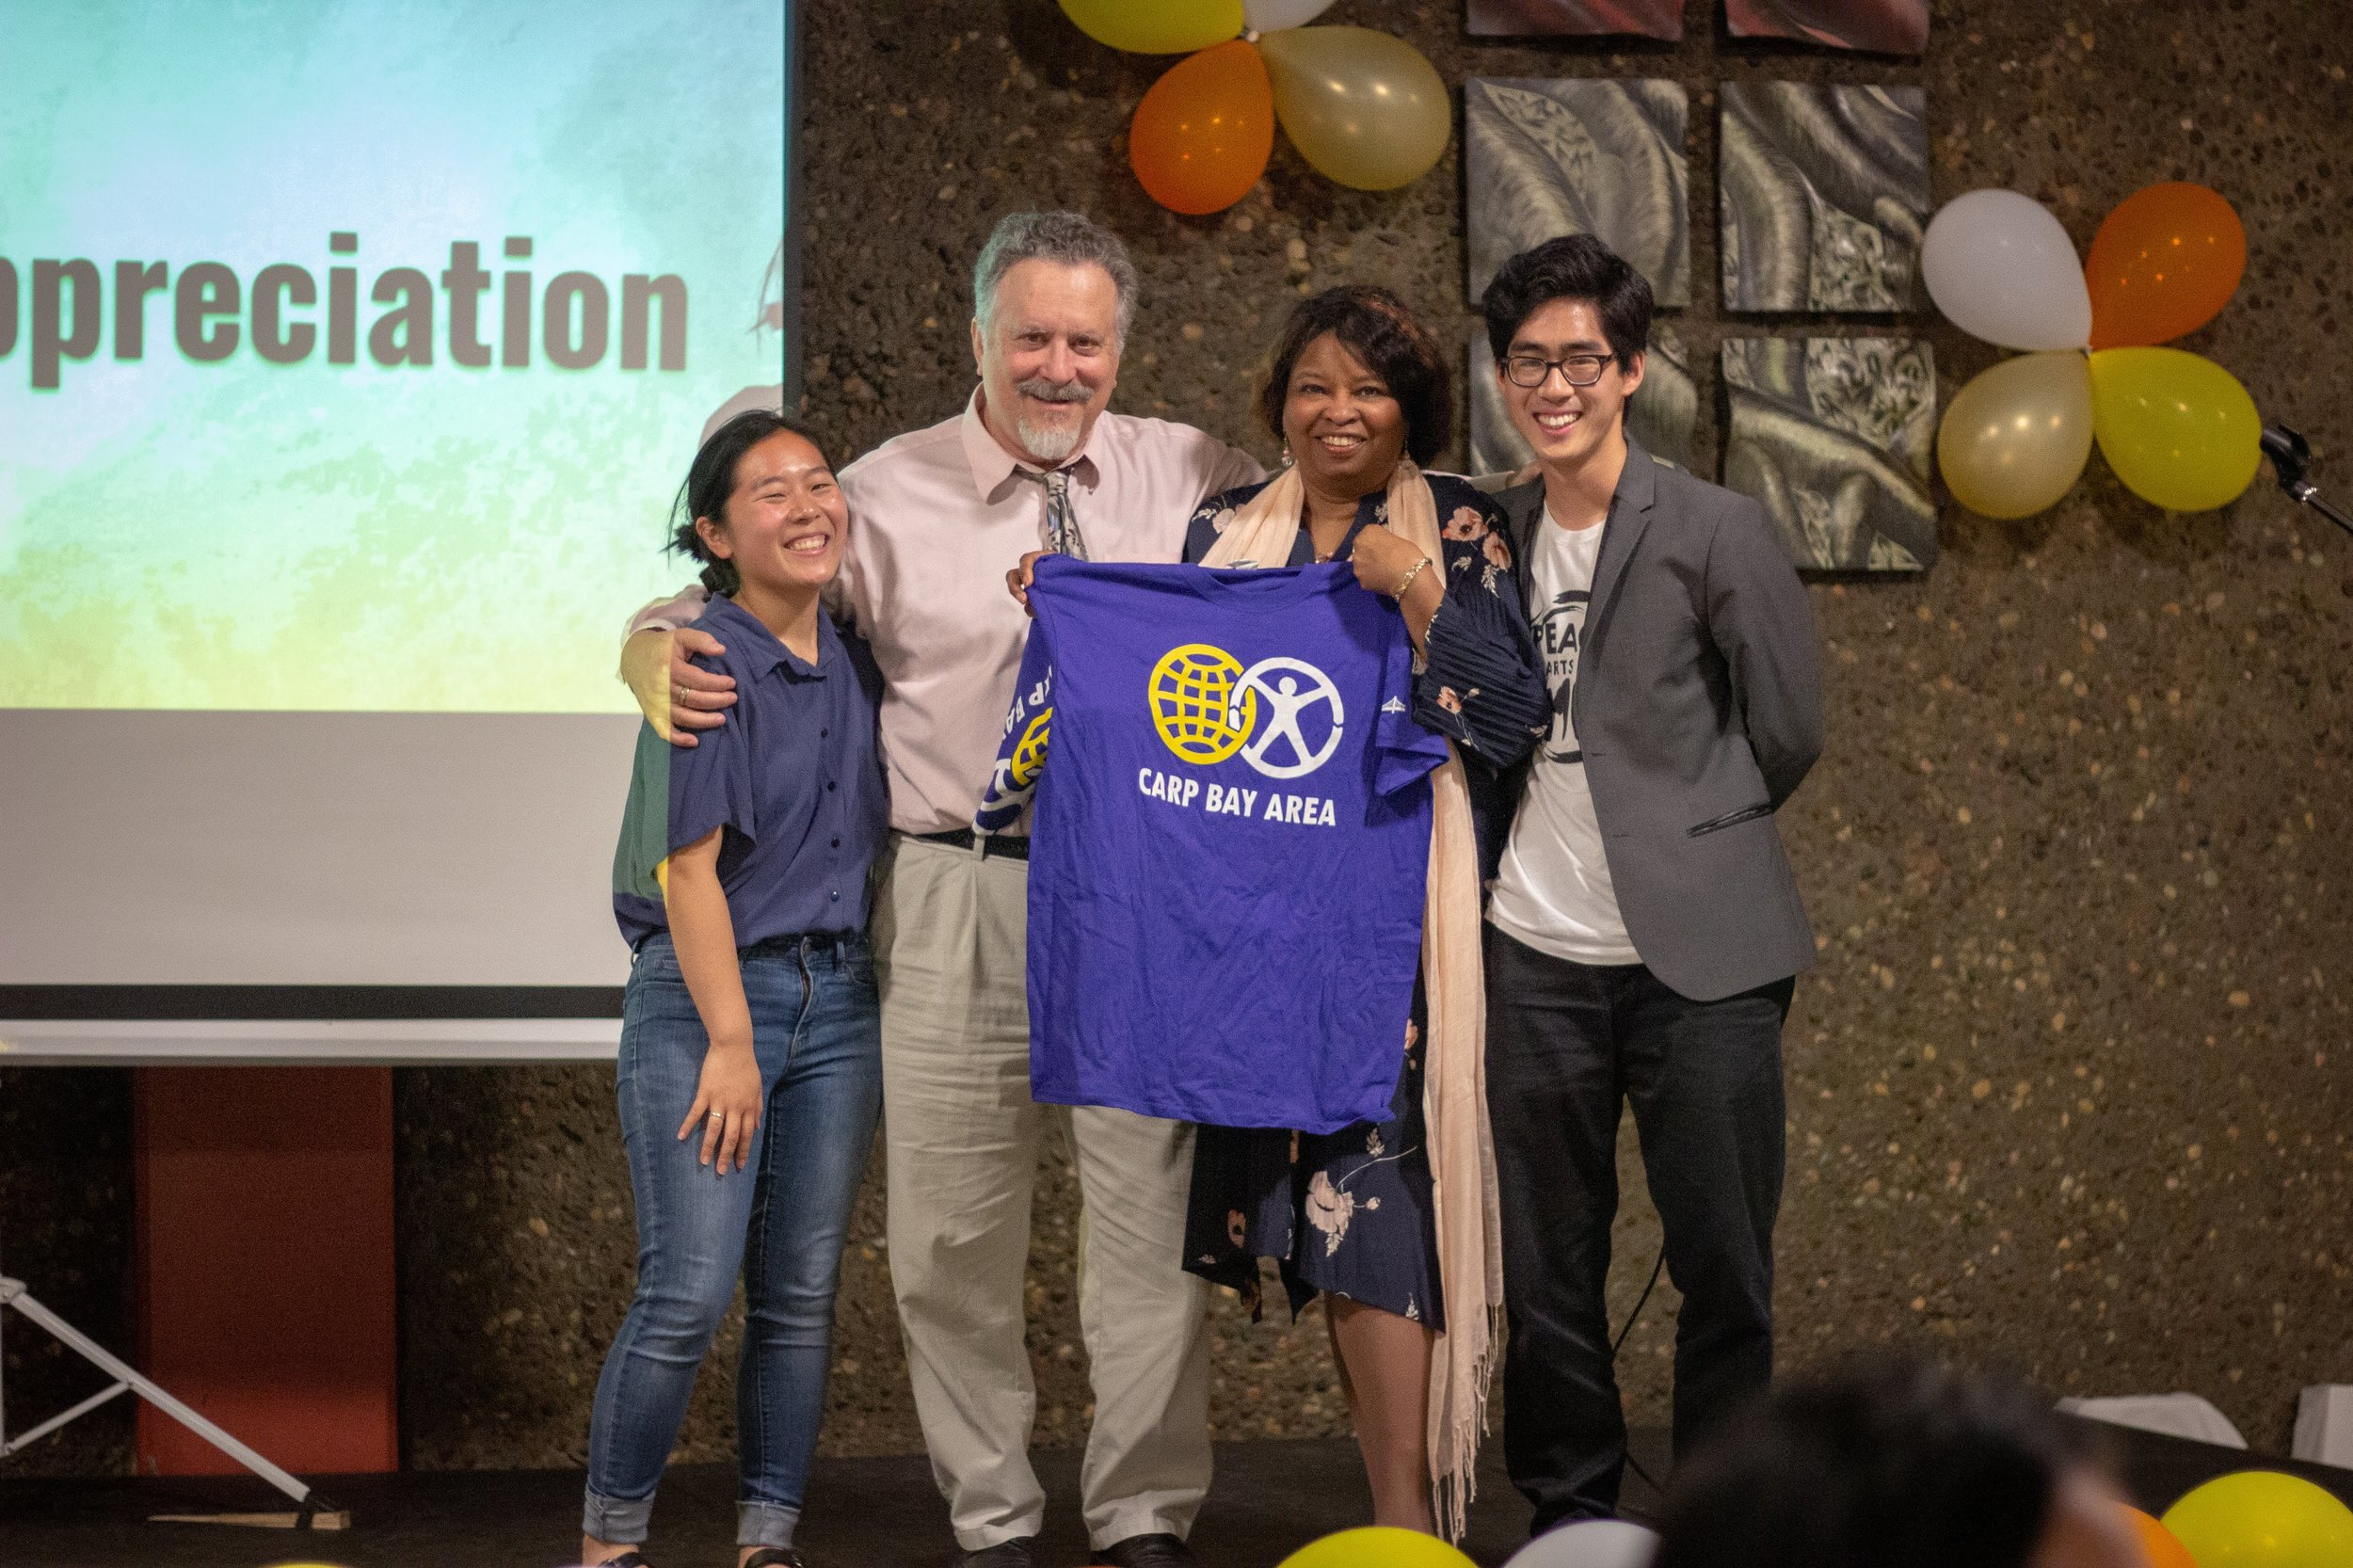 As a token of appreciation, CARP also presented t-shirts to Dr. Lowen (middle right) and her husband (middle left).